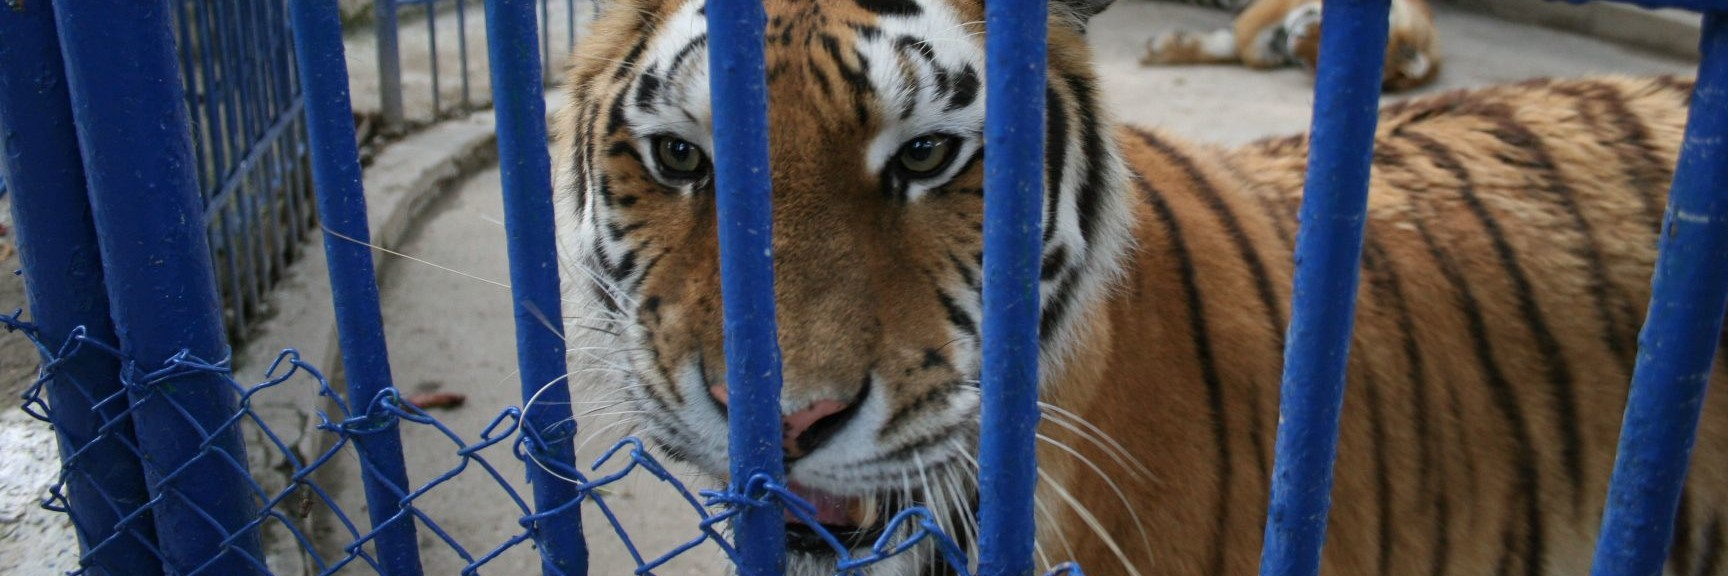 Tigers in a small cage